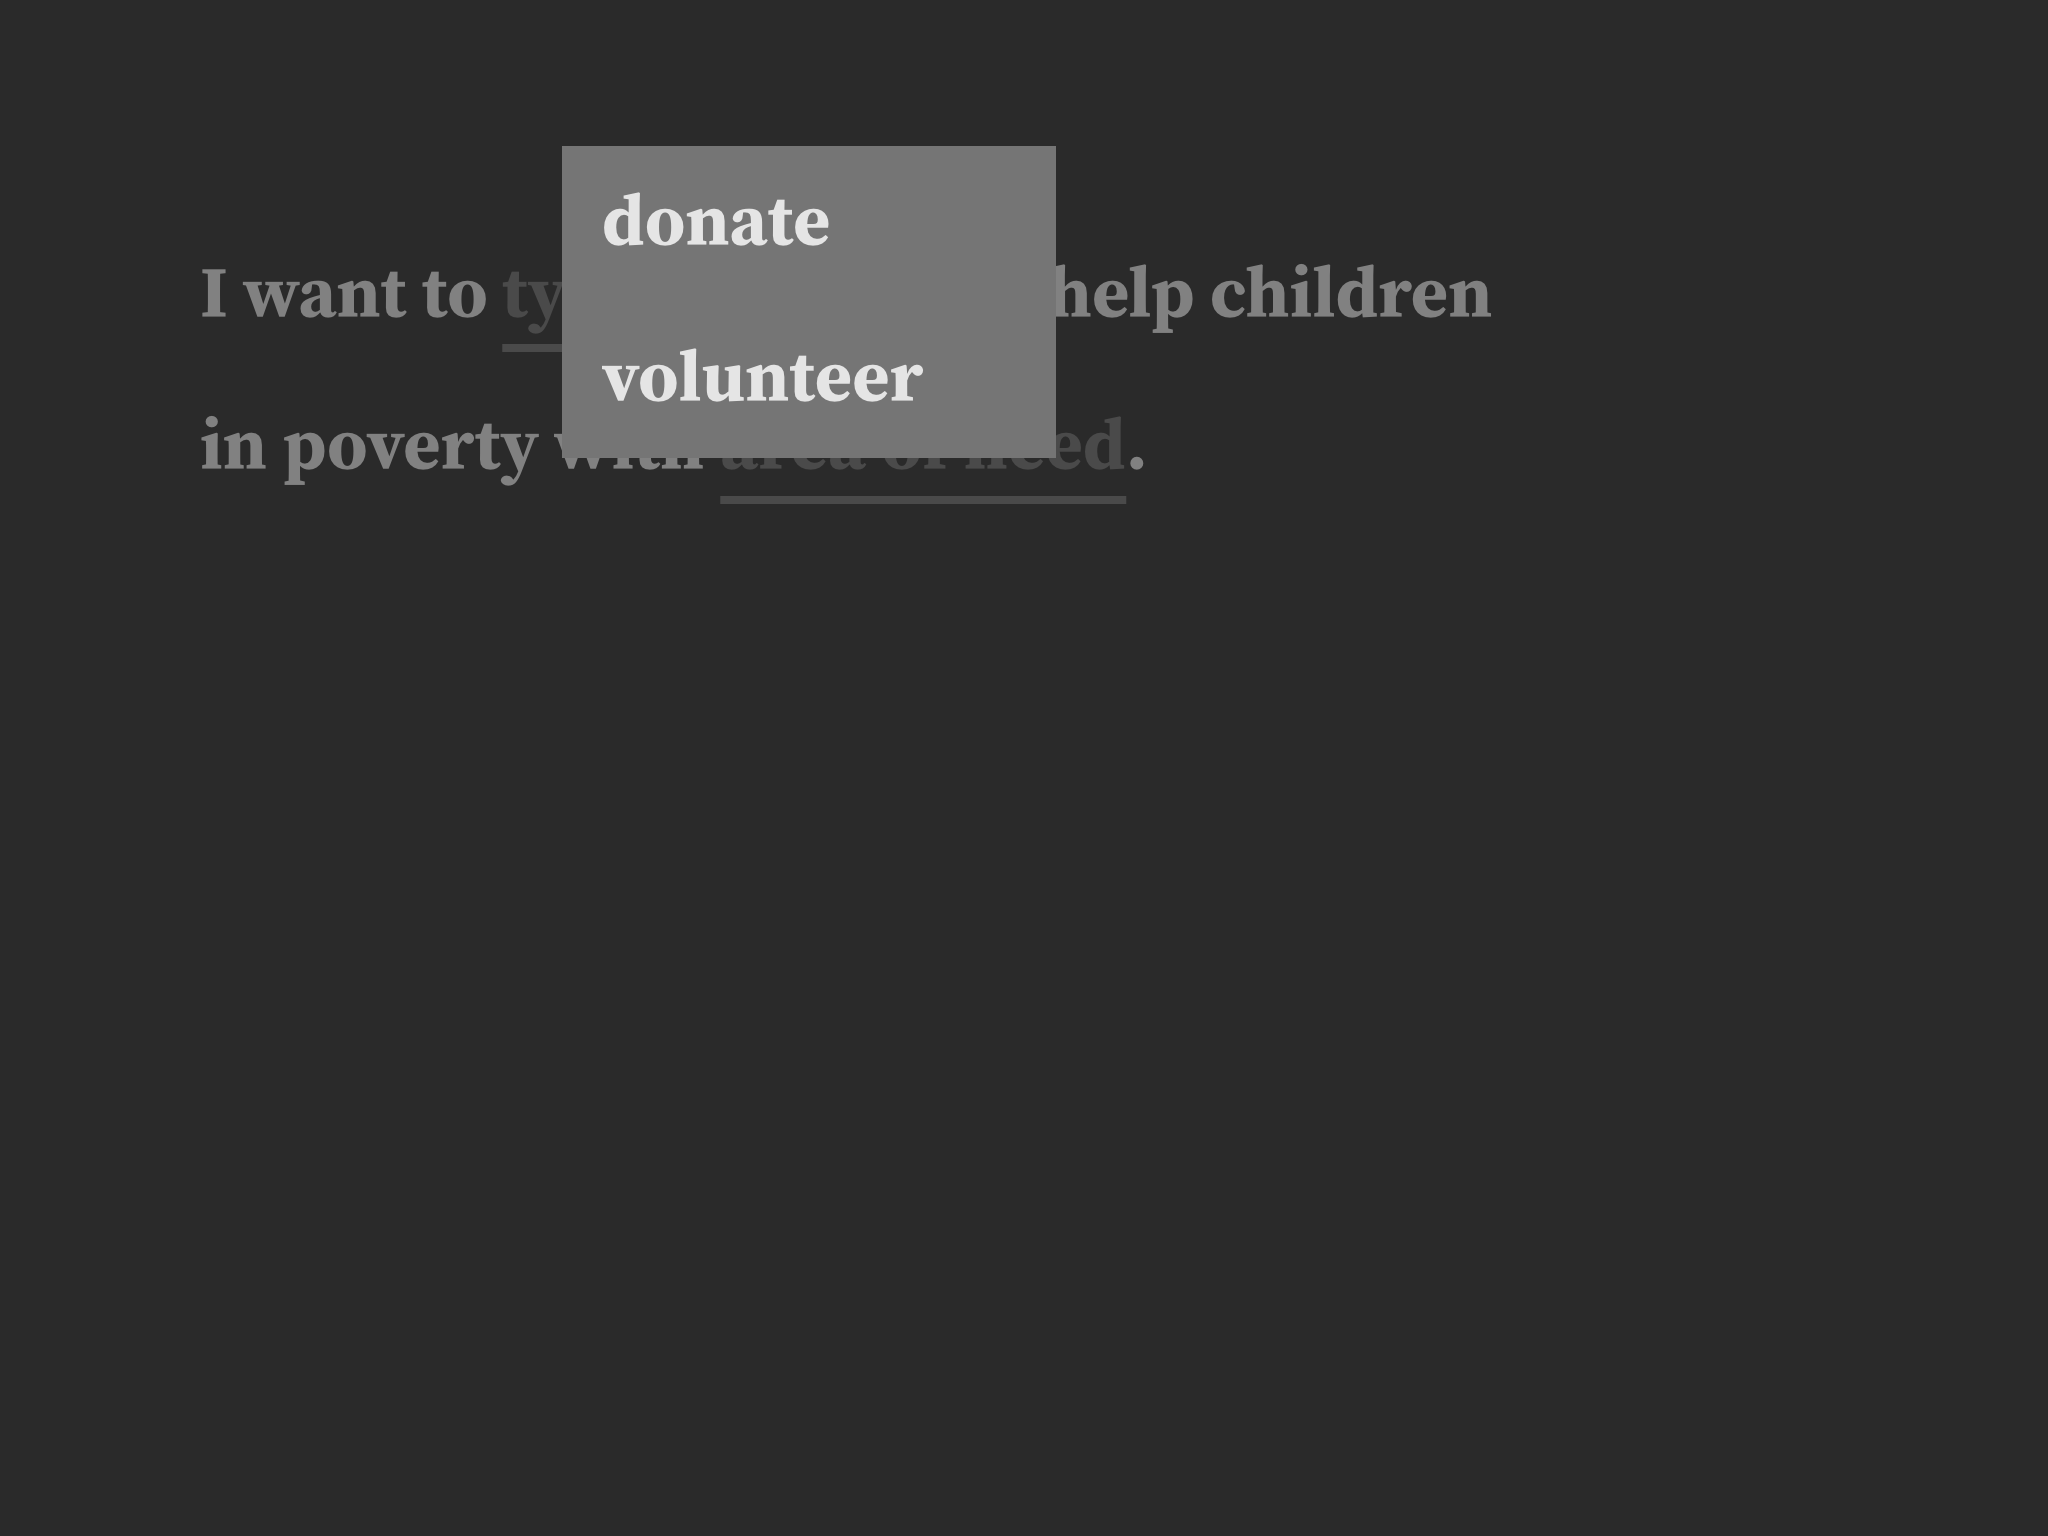 When type of giving is tapped, two options are presented: donate and volunteer.